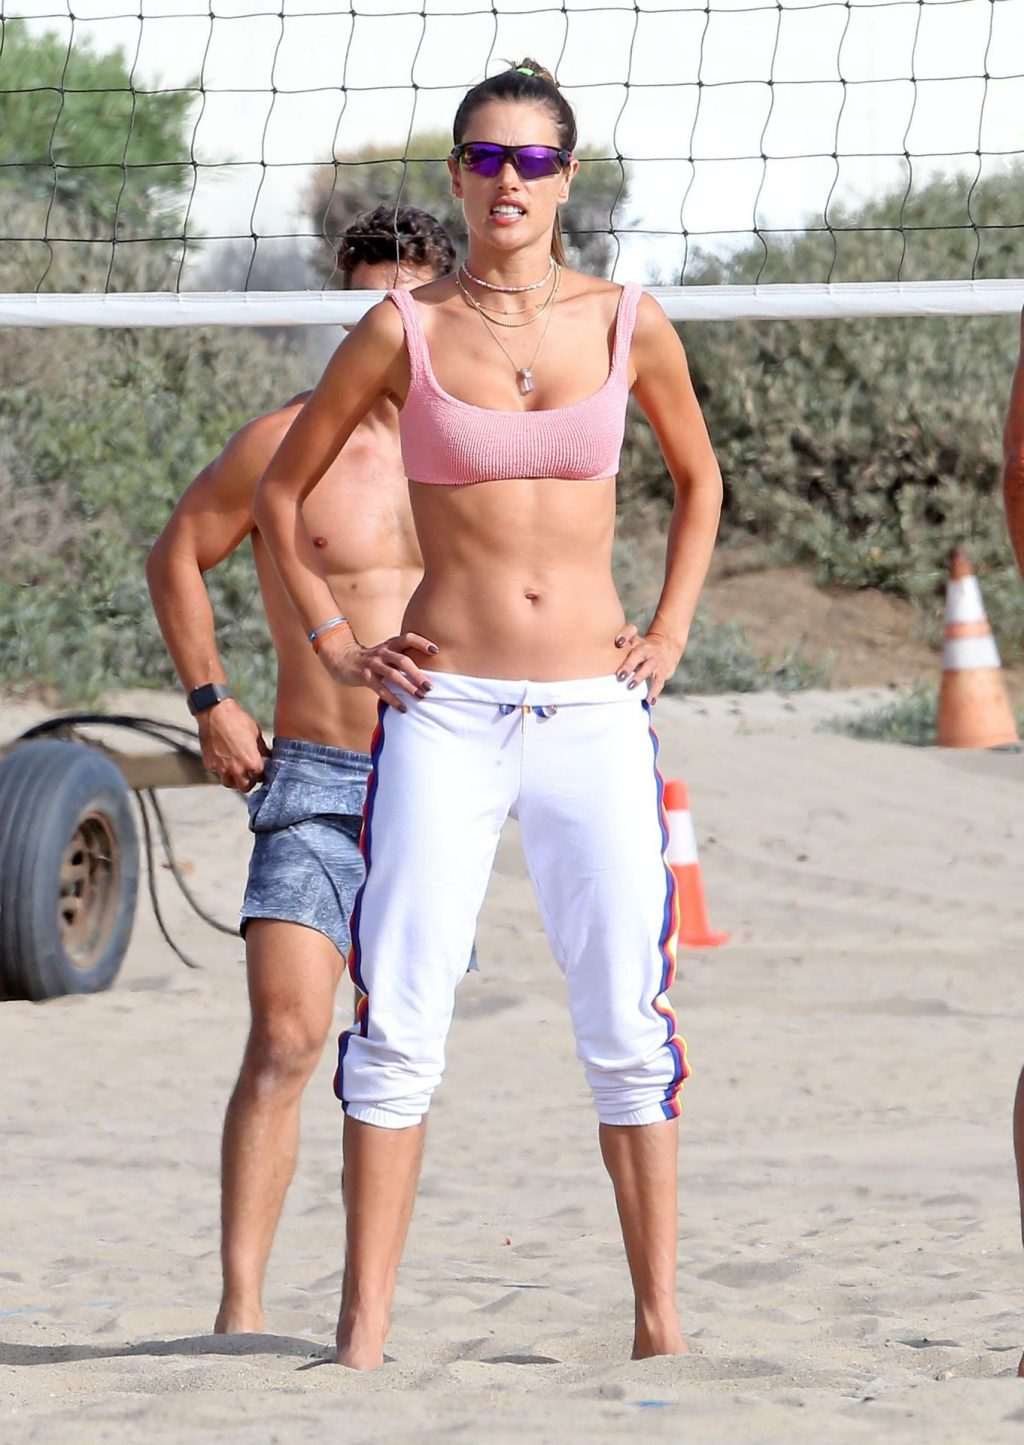 Alessandra Ambrosio Shows Off Her Abs as She Plays Beach Volleyball (116 Photos)